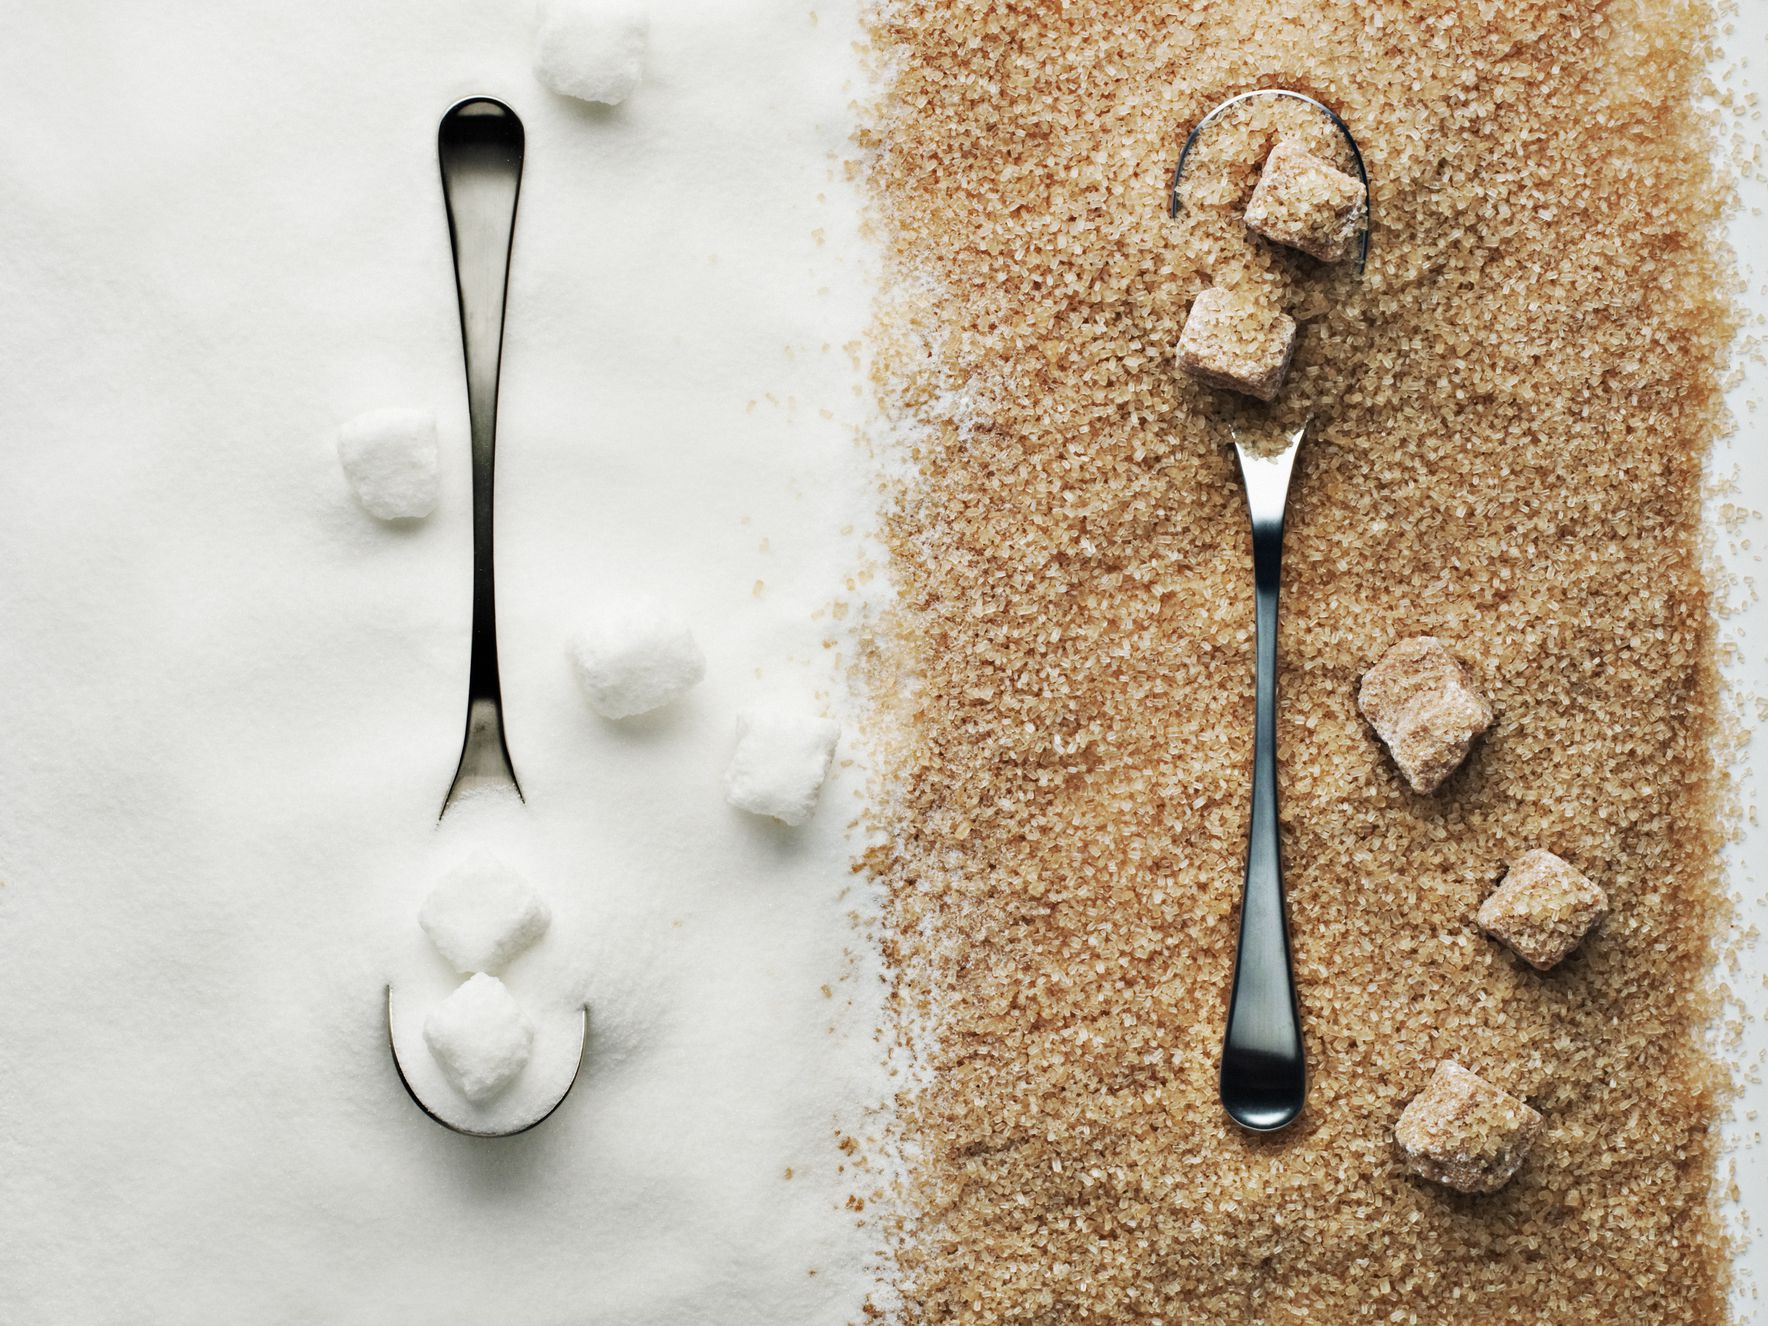 Different Kinds of Sugar for Your Coffee or Tea